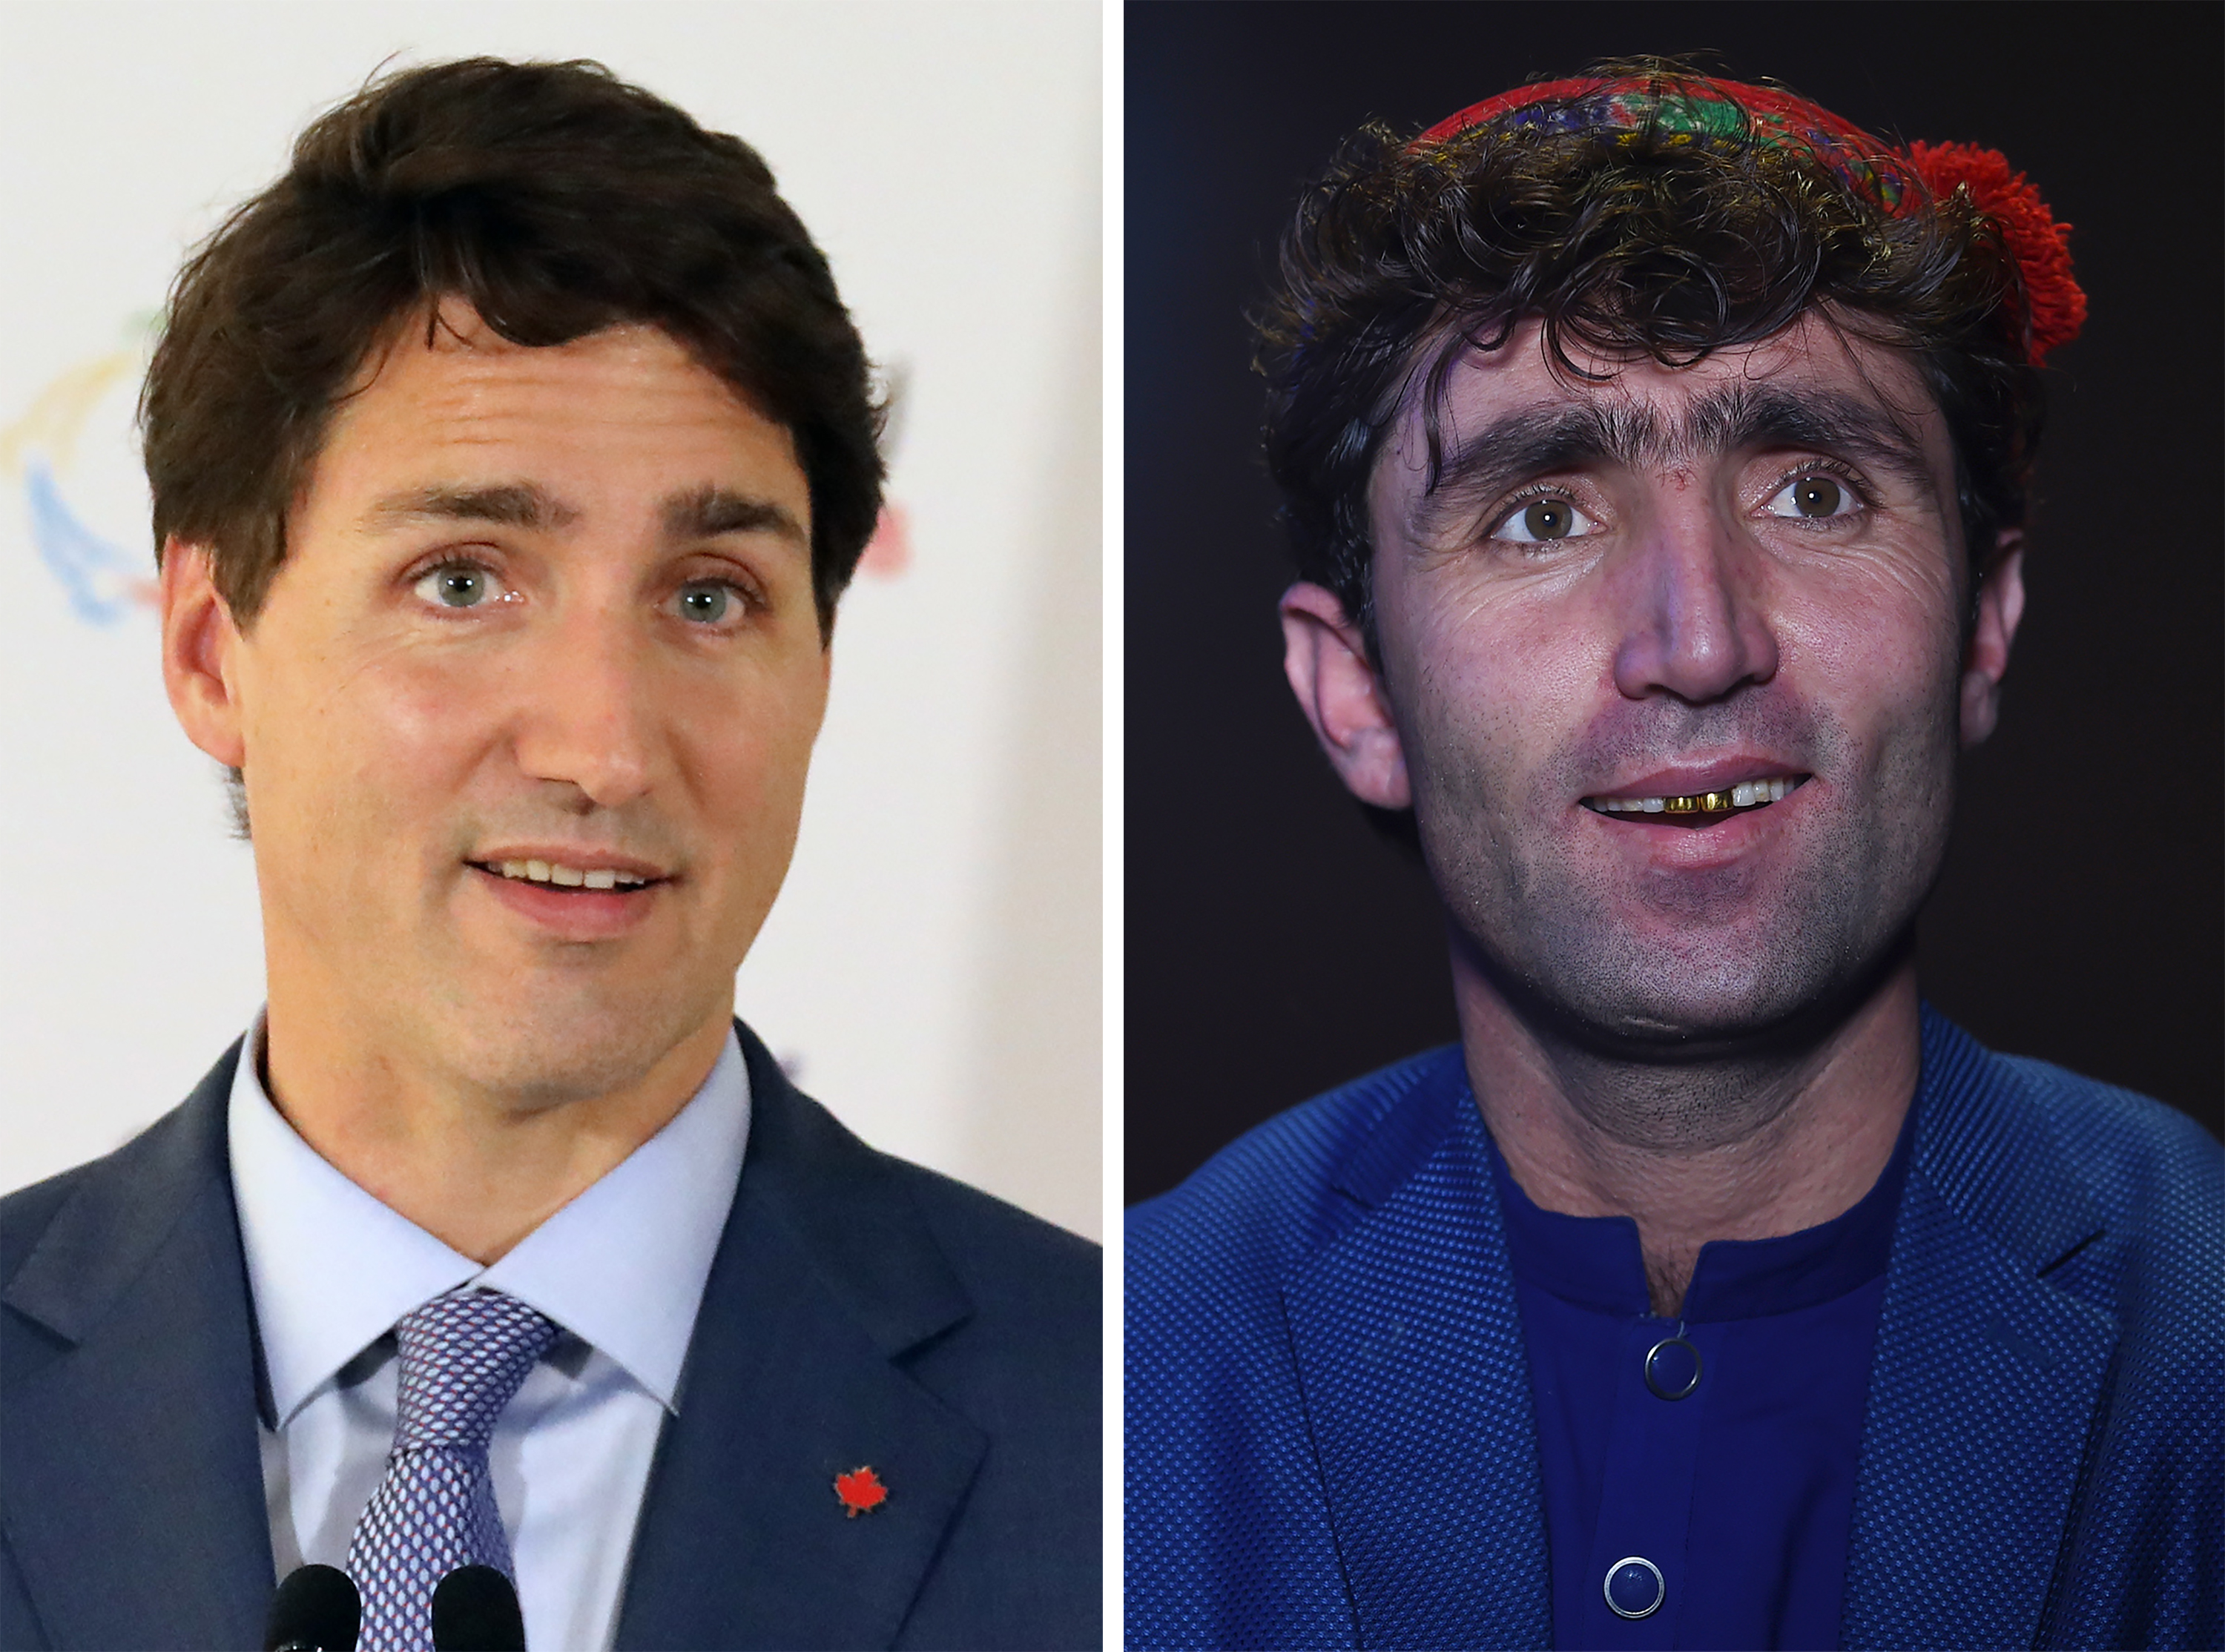 This combo shows a file photo taken on October 12, 2018 of Canada's Prime Minister Justin Trudeau (L) speaking at the end of the 17th Francophone countries summit in the Armenian city of Yerevan; and an image of Abdul Salam Maftoon (R), an Afghan singer and contestant of the television music competition 'Afghan Star', speaking during an interview with AFP in Kabul on January 13, 2019.